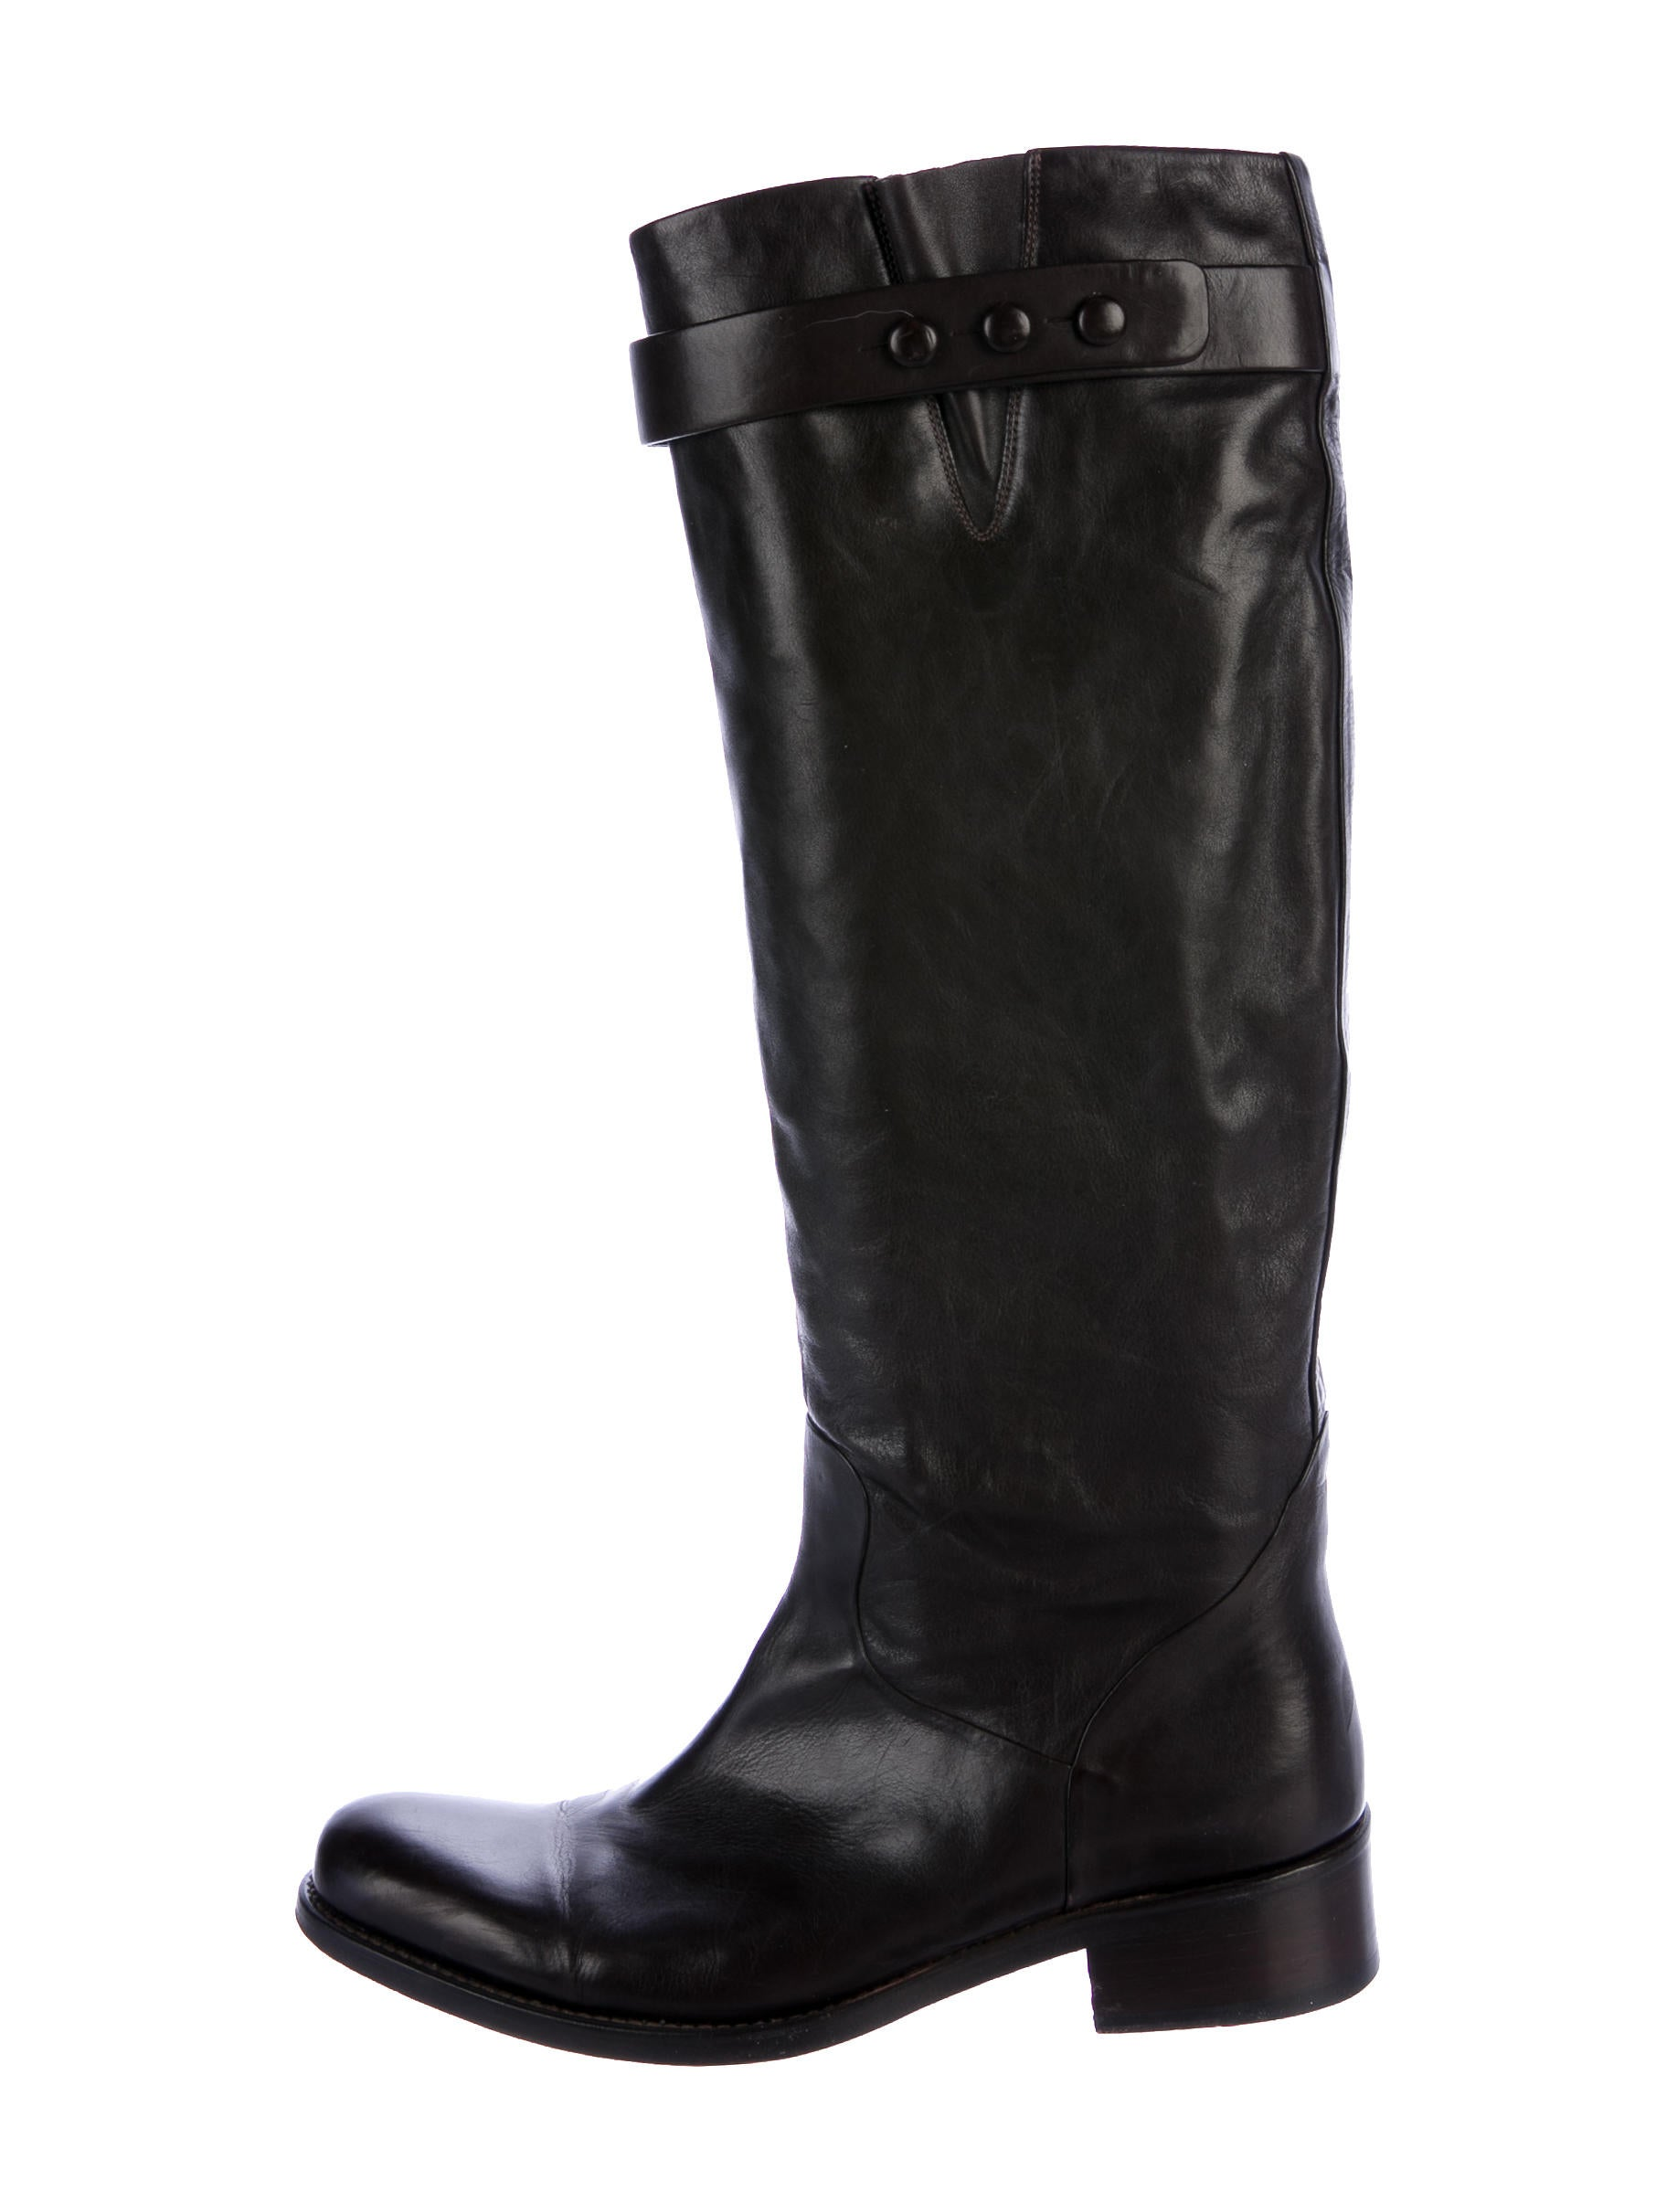 Freelance Leather Round-Toe Knee Boots clearance new arrival pre order cheap online classic cheap price qWTa5O